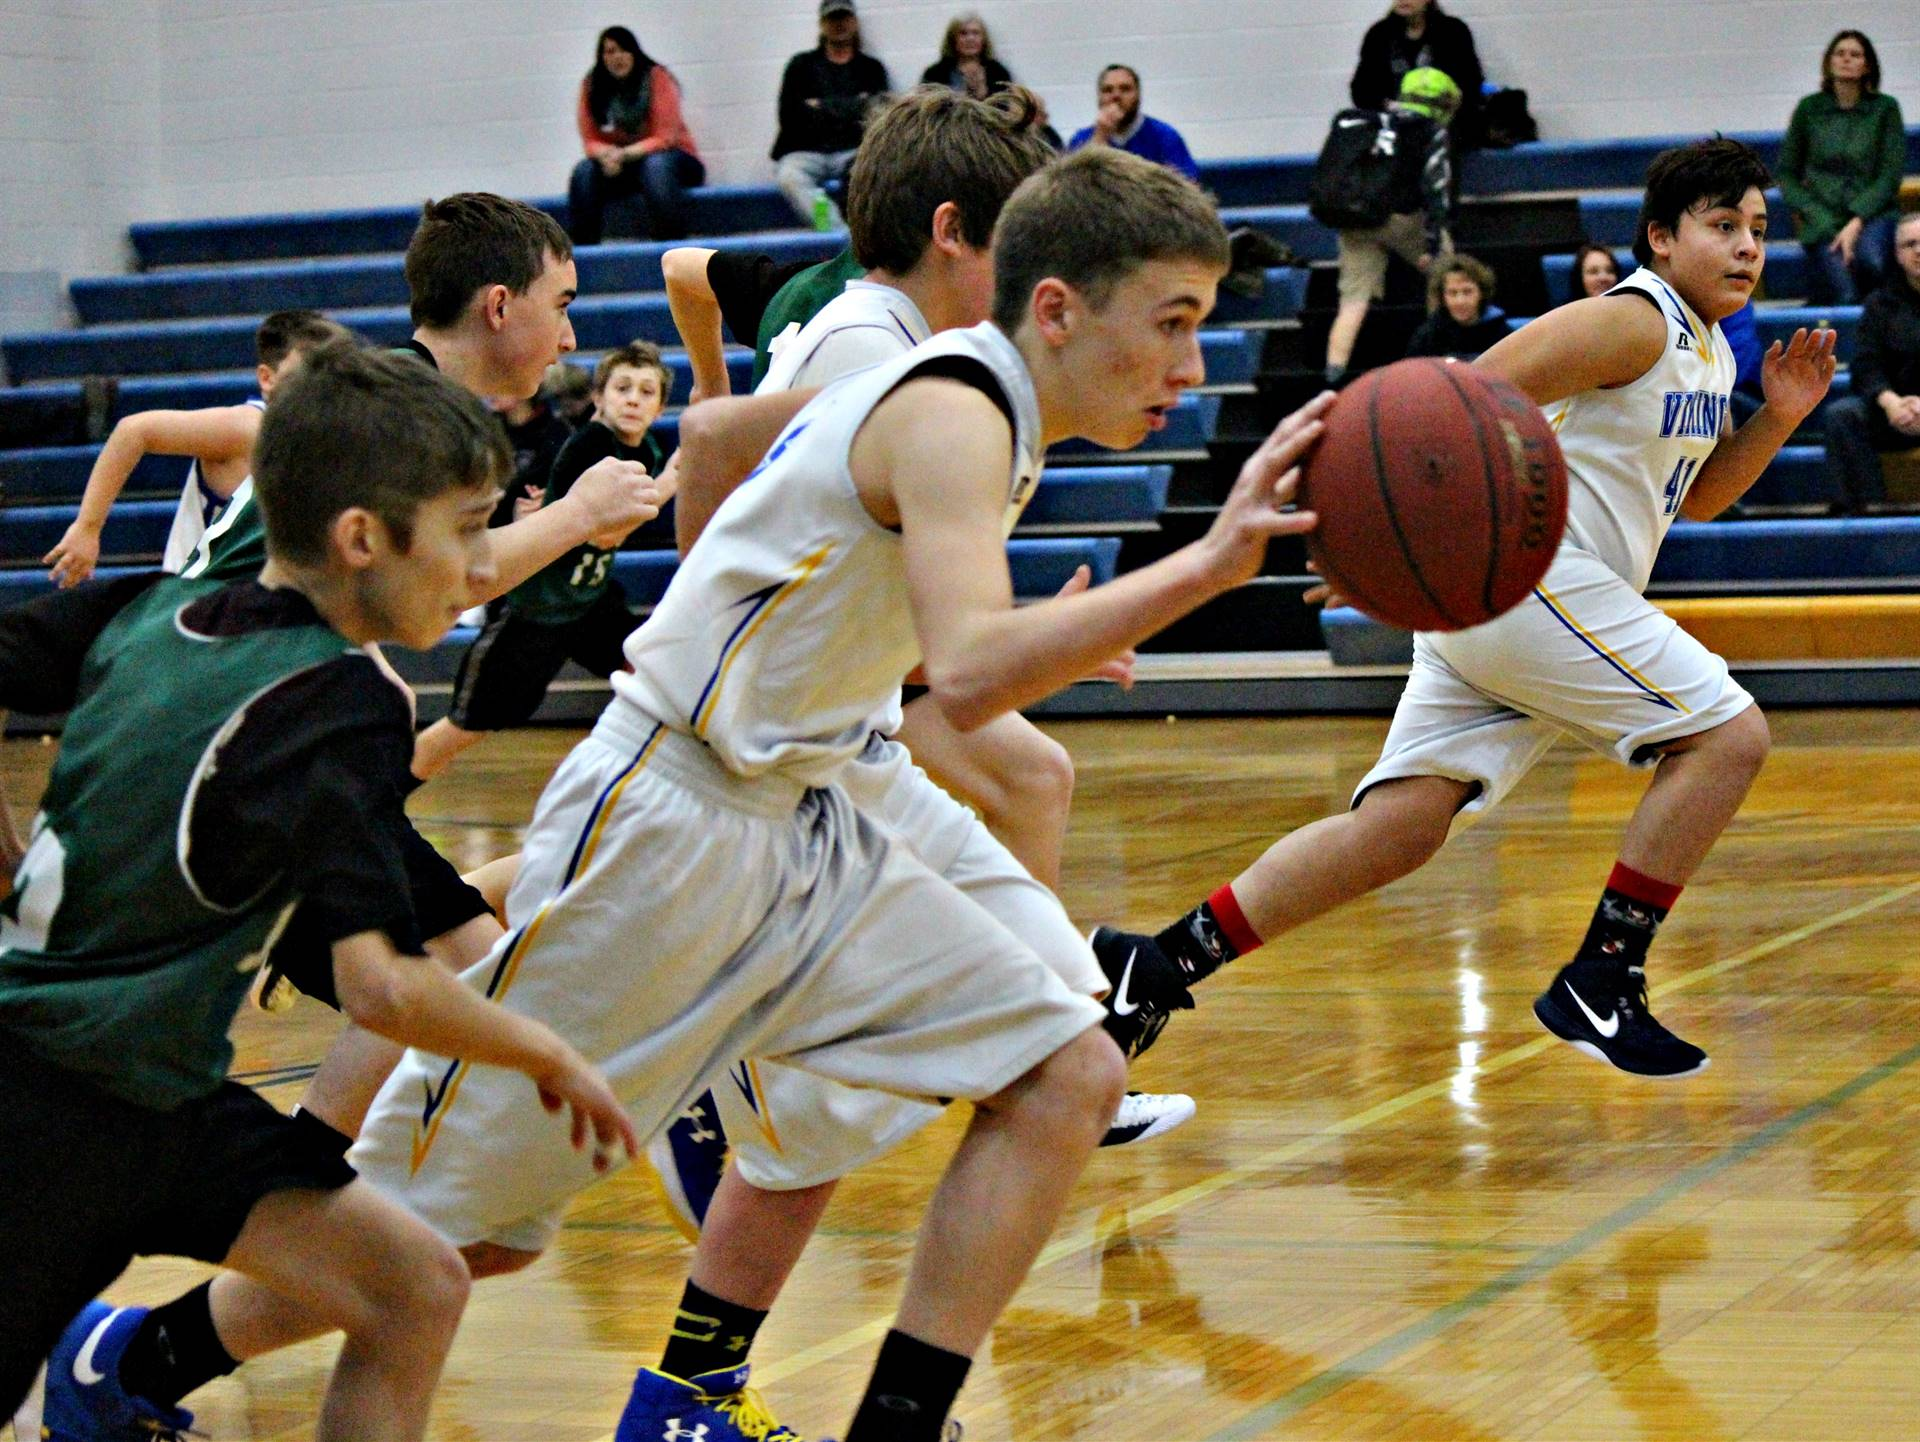 A group of boys playing in a basketball game